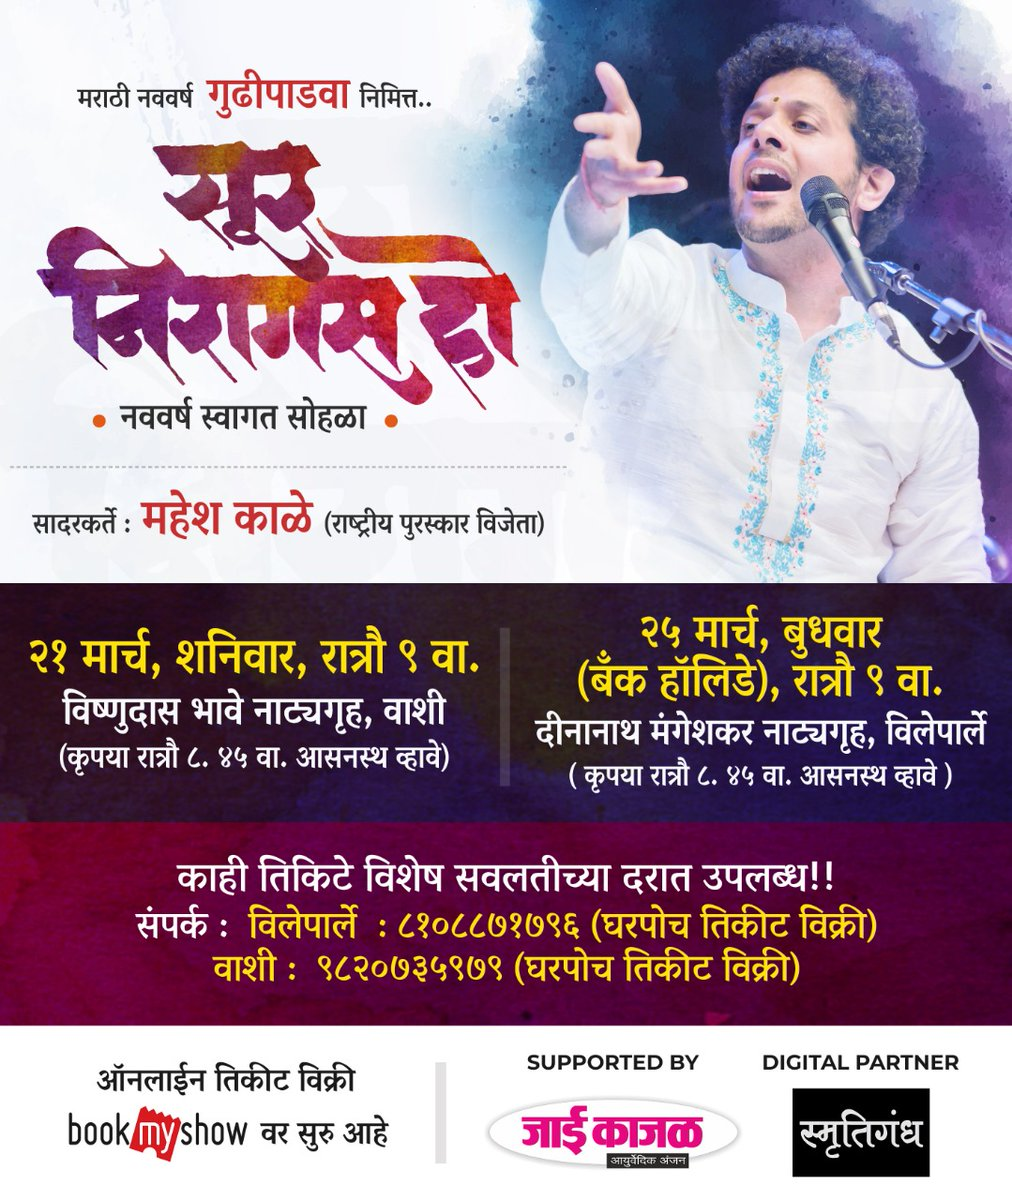 Upcoming Concerts in Mumbai #SurNiragasHo Do come if you're around and share it with your friends as well!  #MKLive @maheshmkale #GudhiPadwapic.twitter.com/6RTNg0q6BE